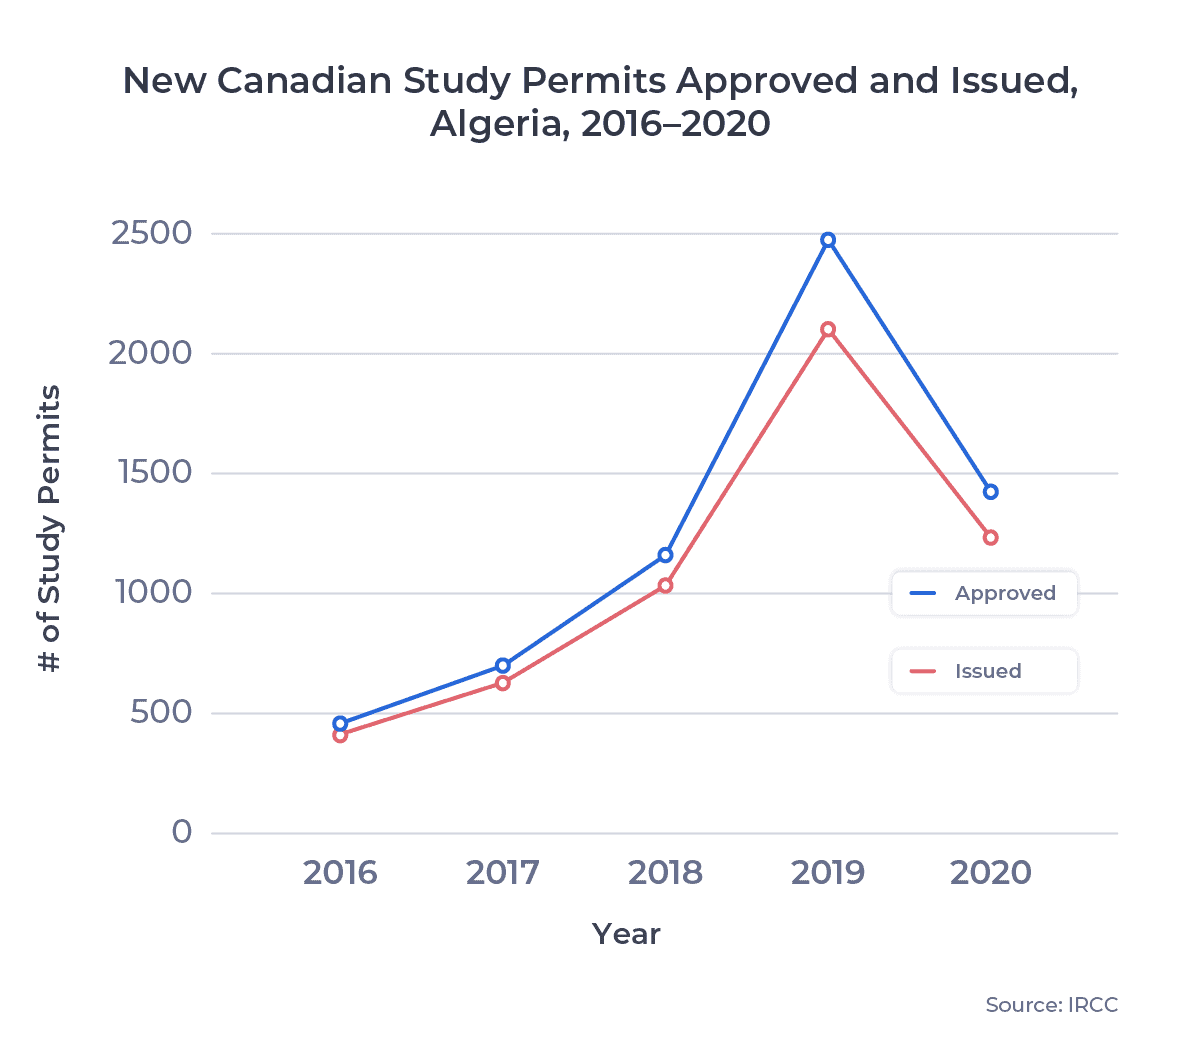 New Canadian Study Permits Approved and Issued, Algeria, 2016–2020